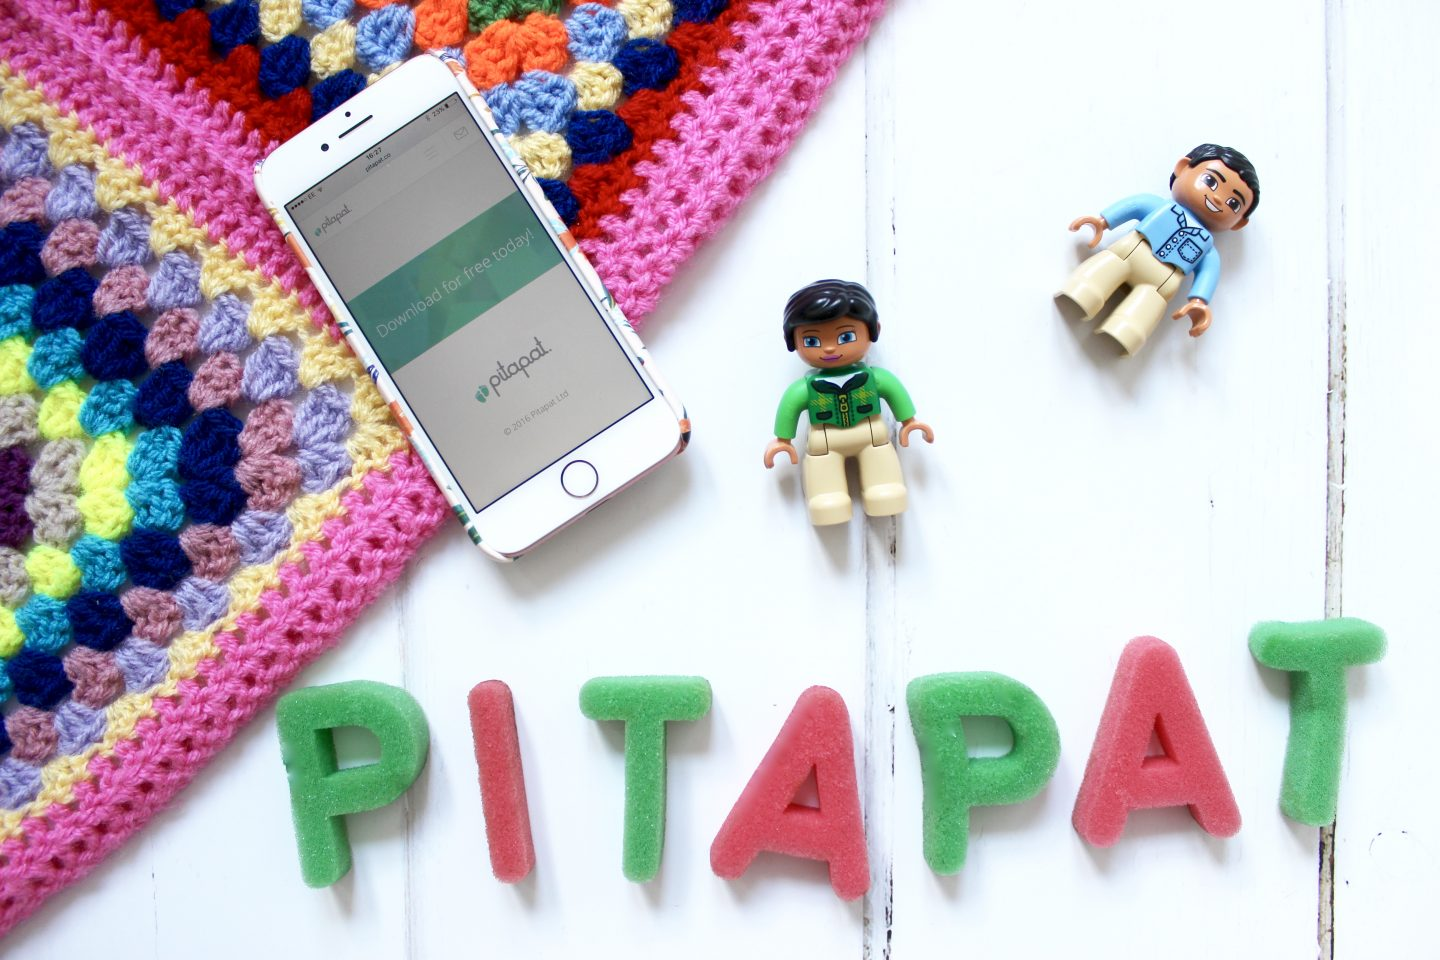 Buy and Sell Kids Stuff Online with Pitapat!